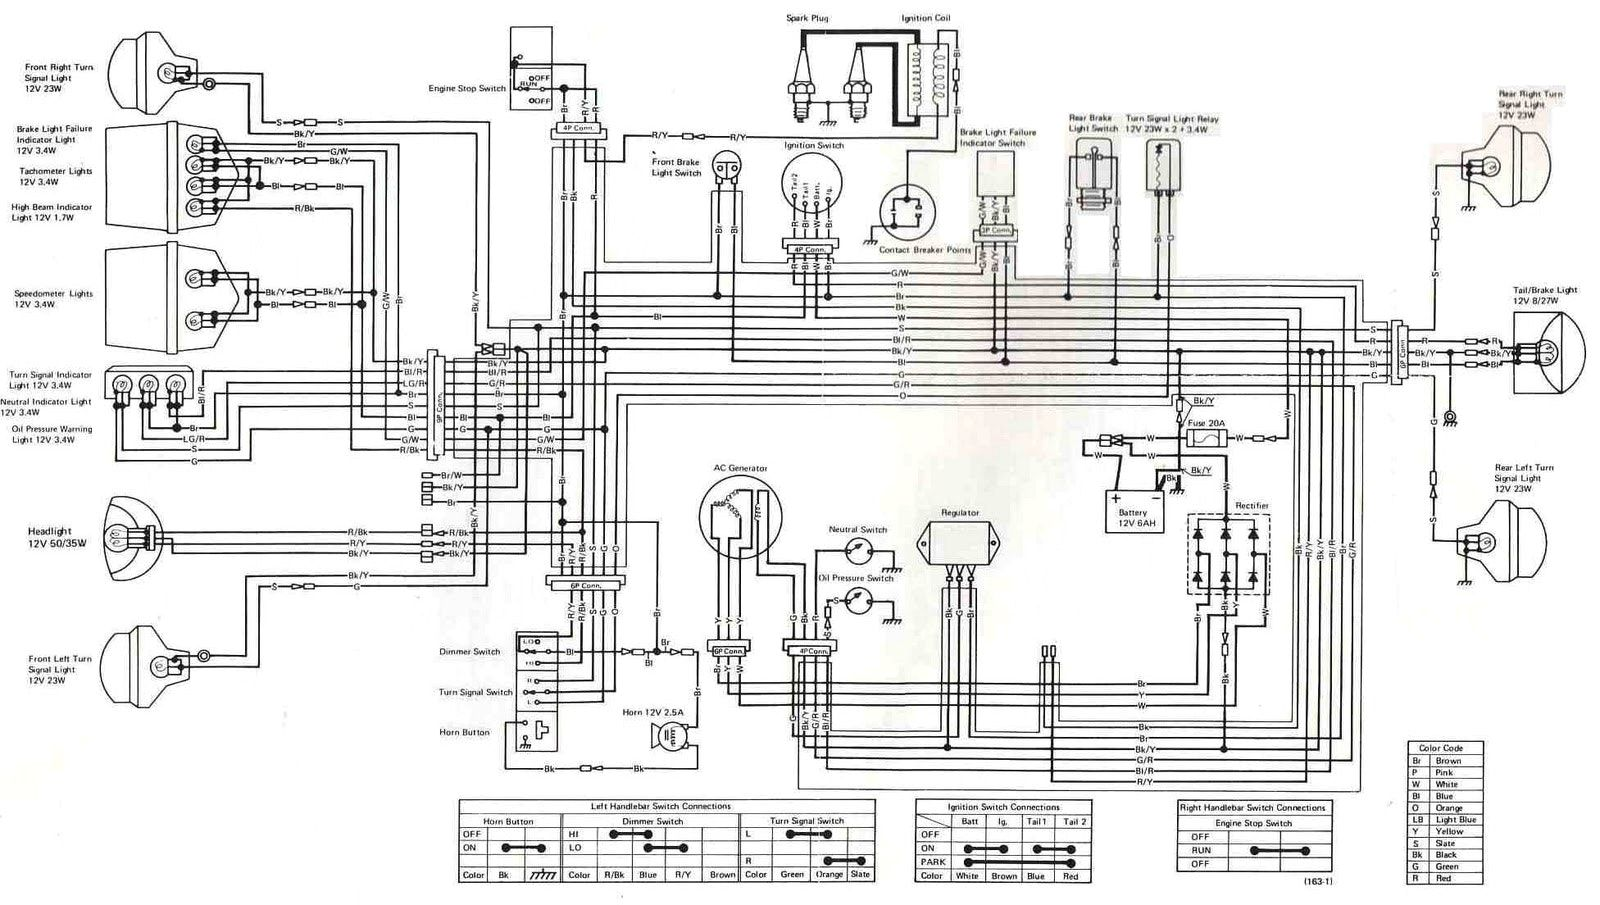 F7 Kawasaki Wiring Diagrams - Wiring Schematics on